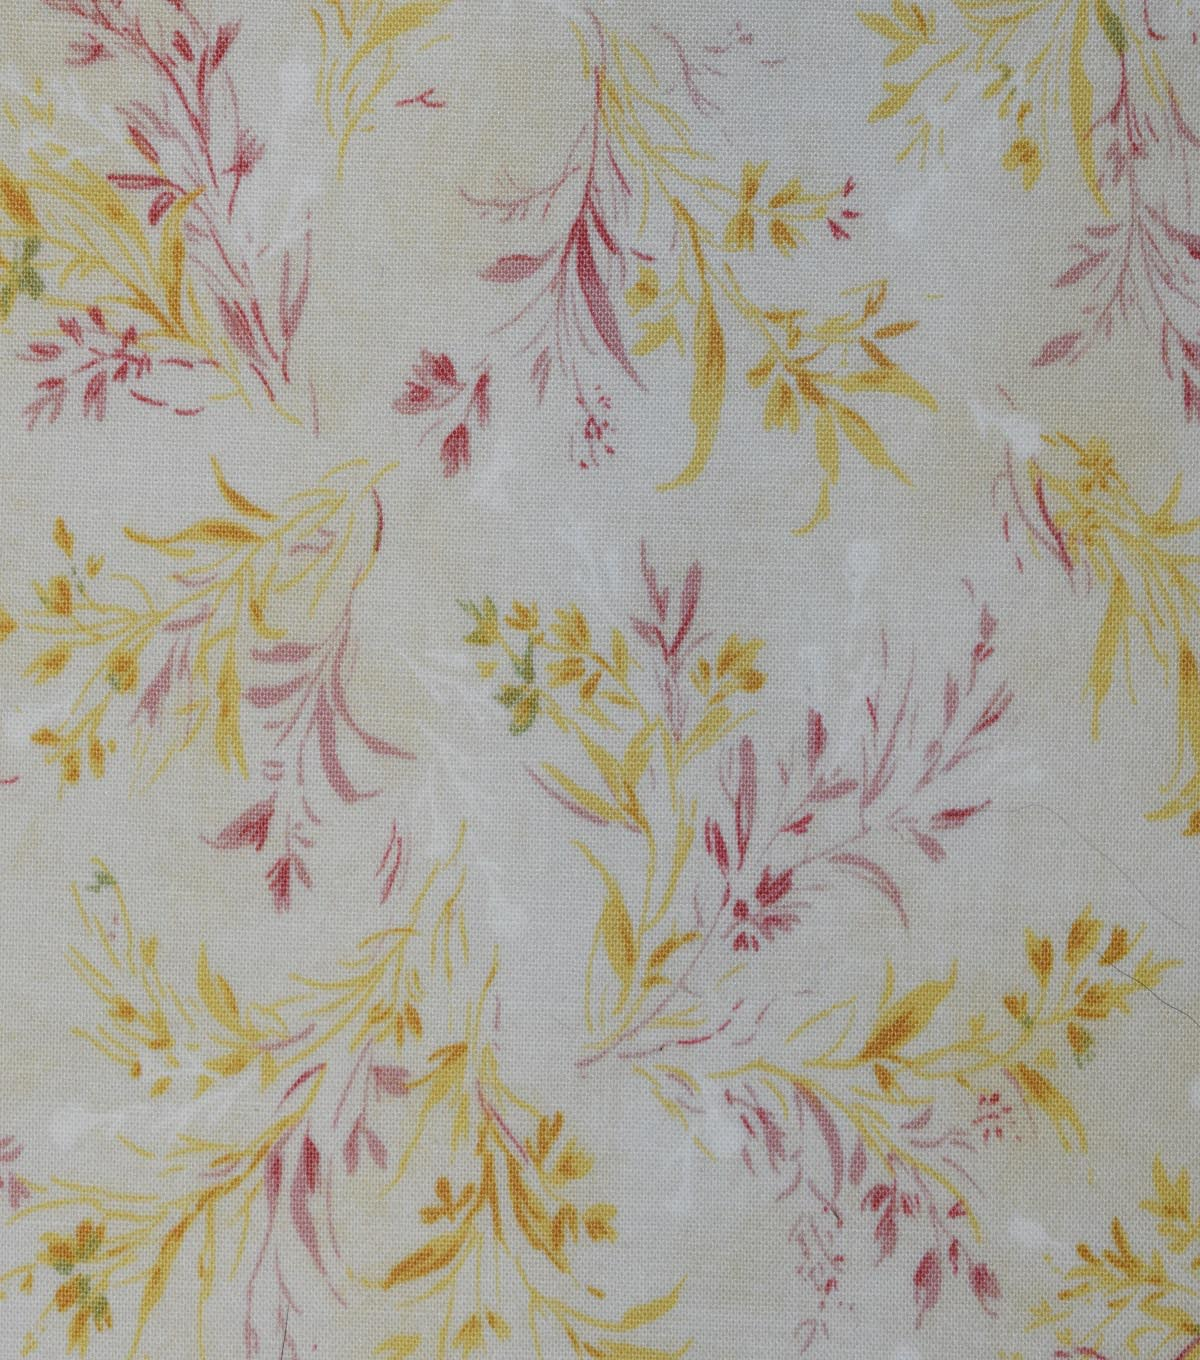 Vintage Premium Cotton Fabric -Yellow Whispy Vines